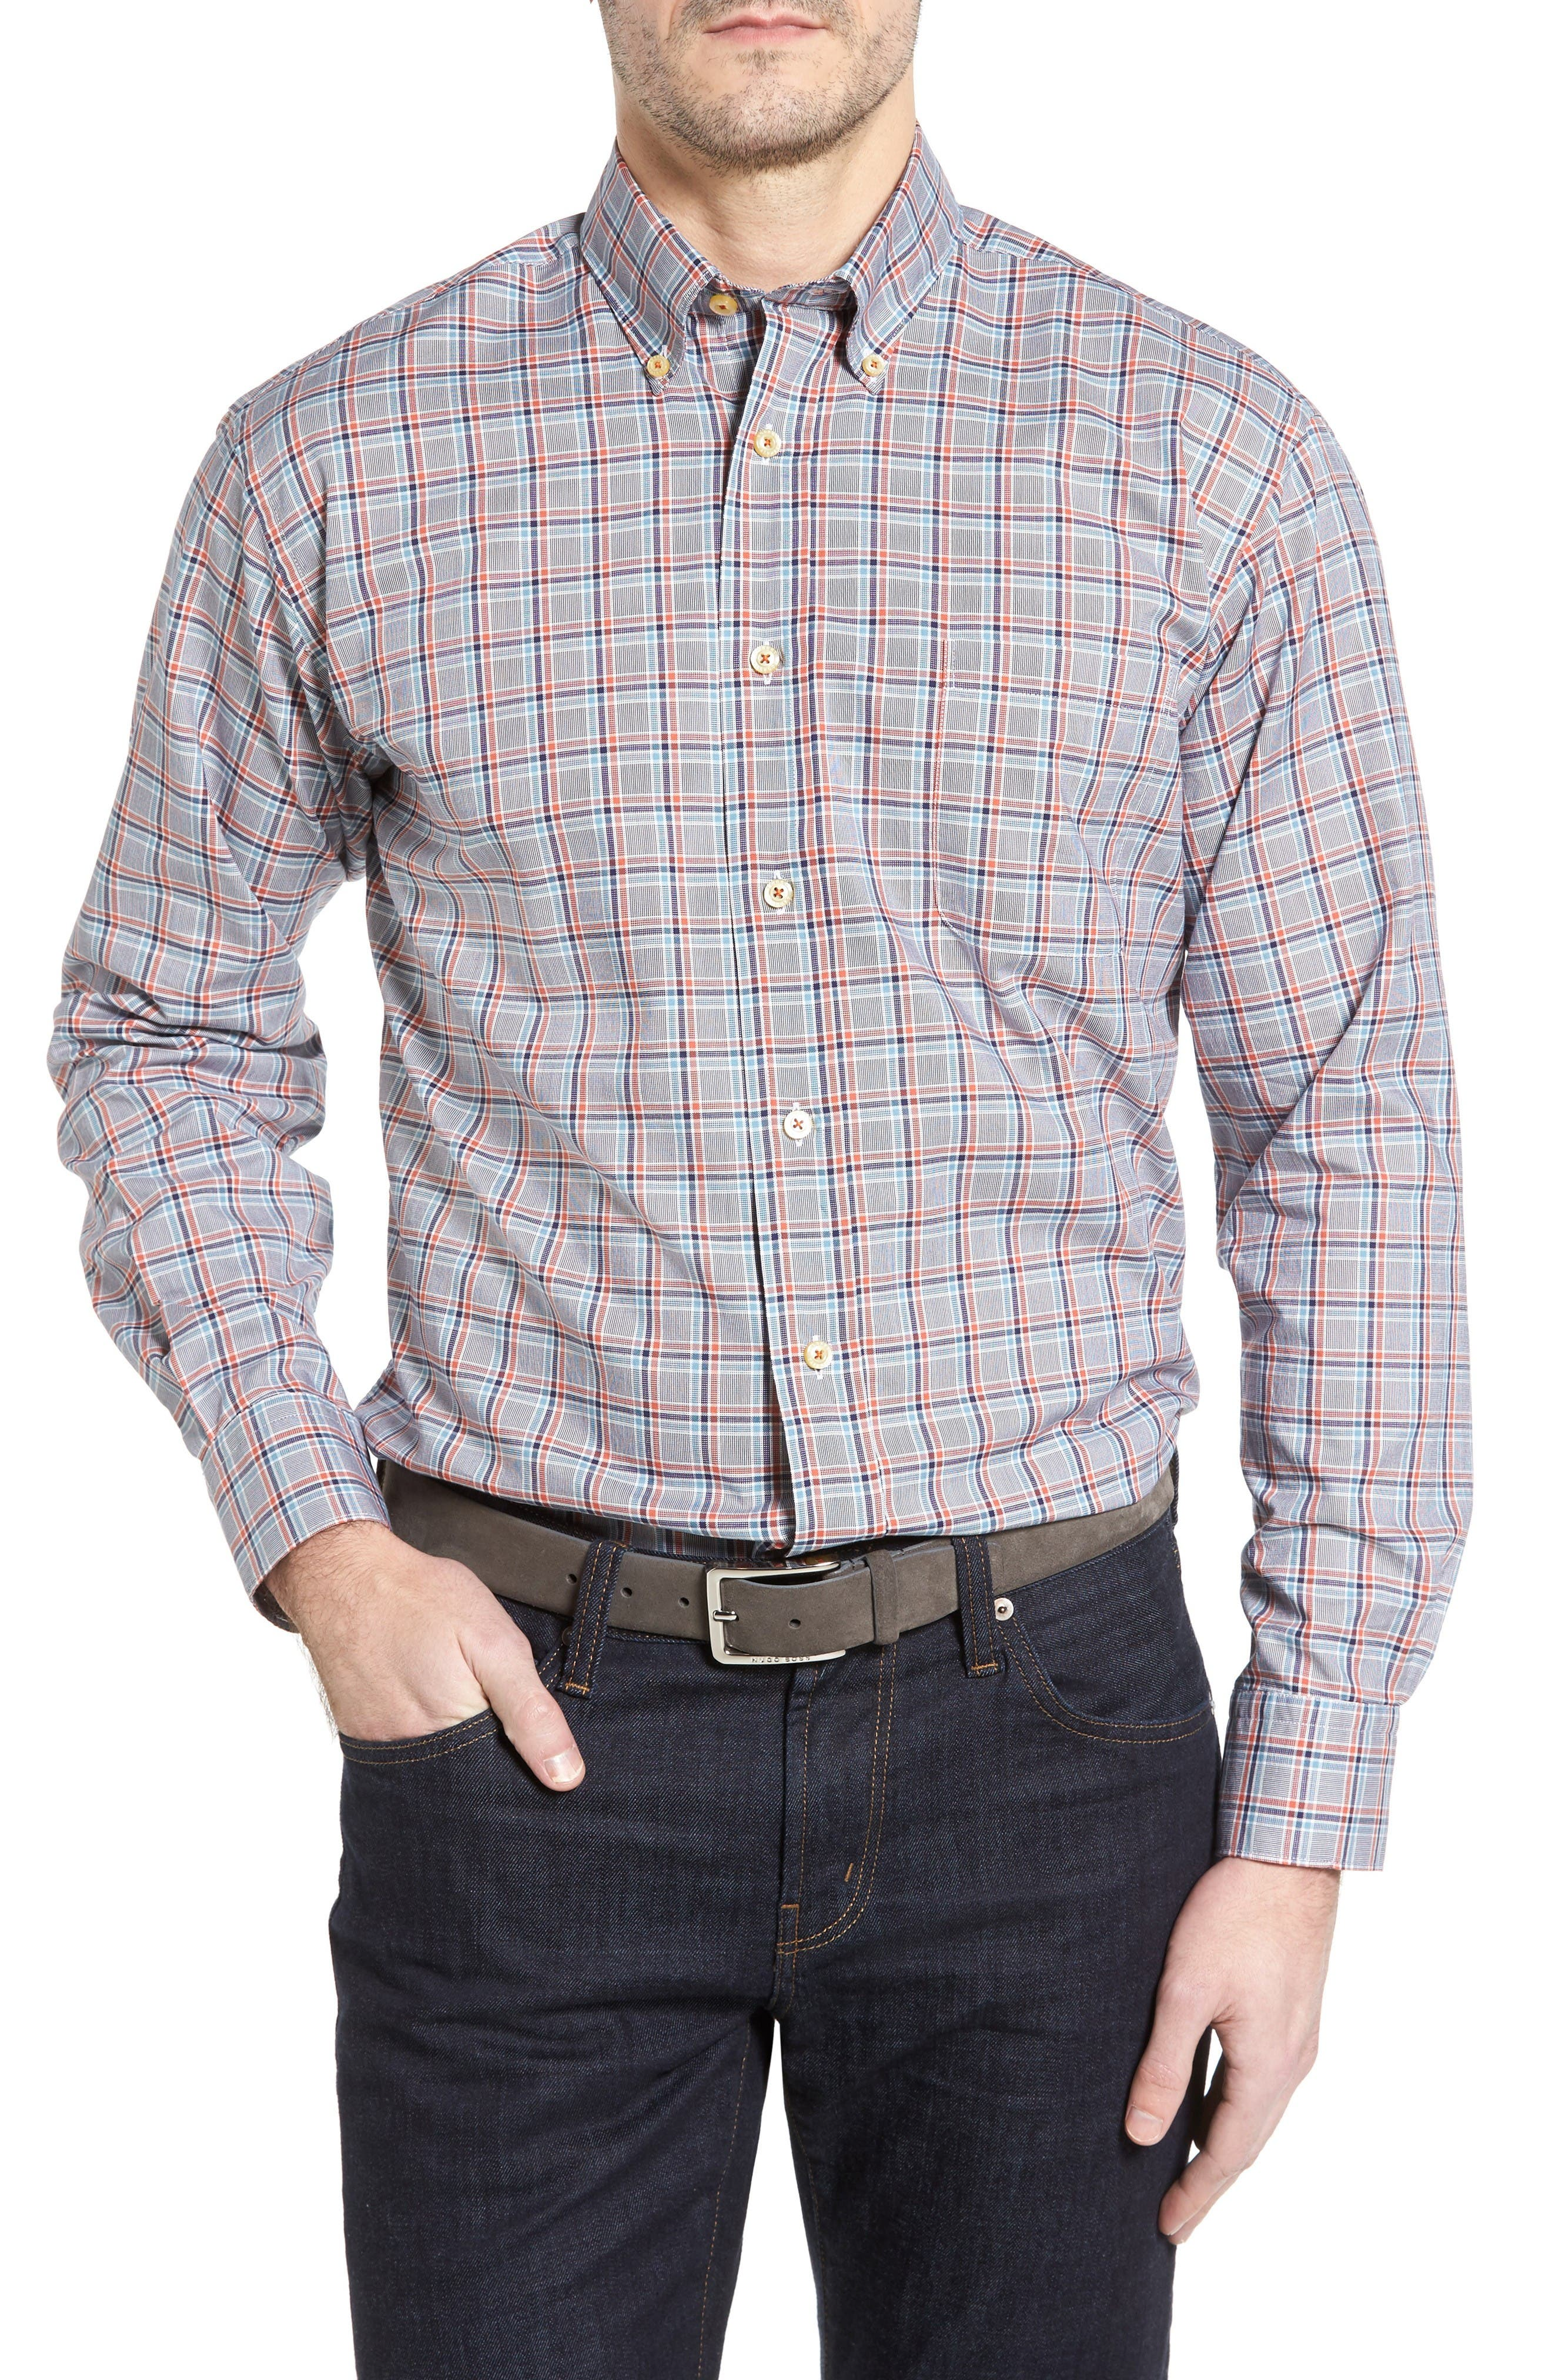 Alternate Image 1 Selected - Robert Talbott Anderson Classic Fit Plaid Oxford Sport Shirt